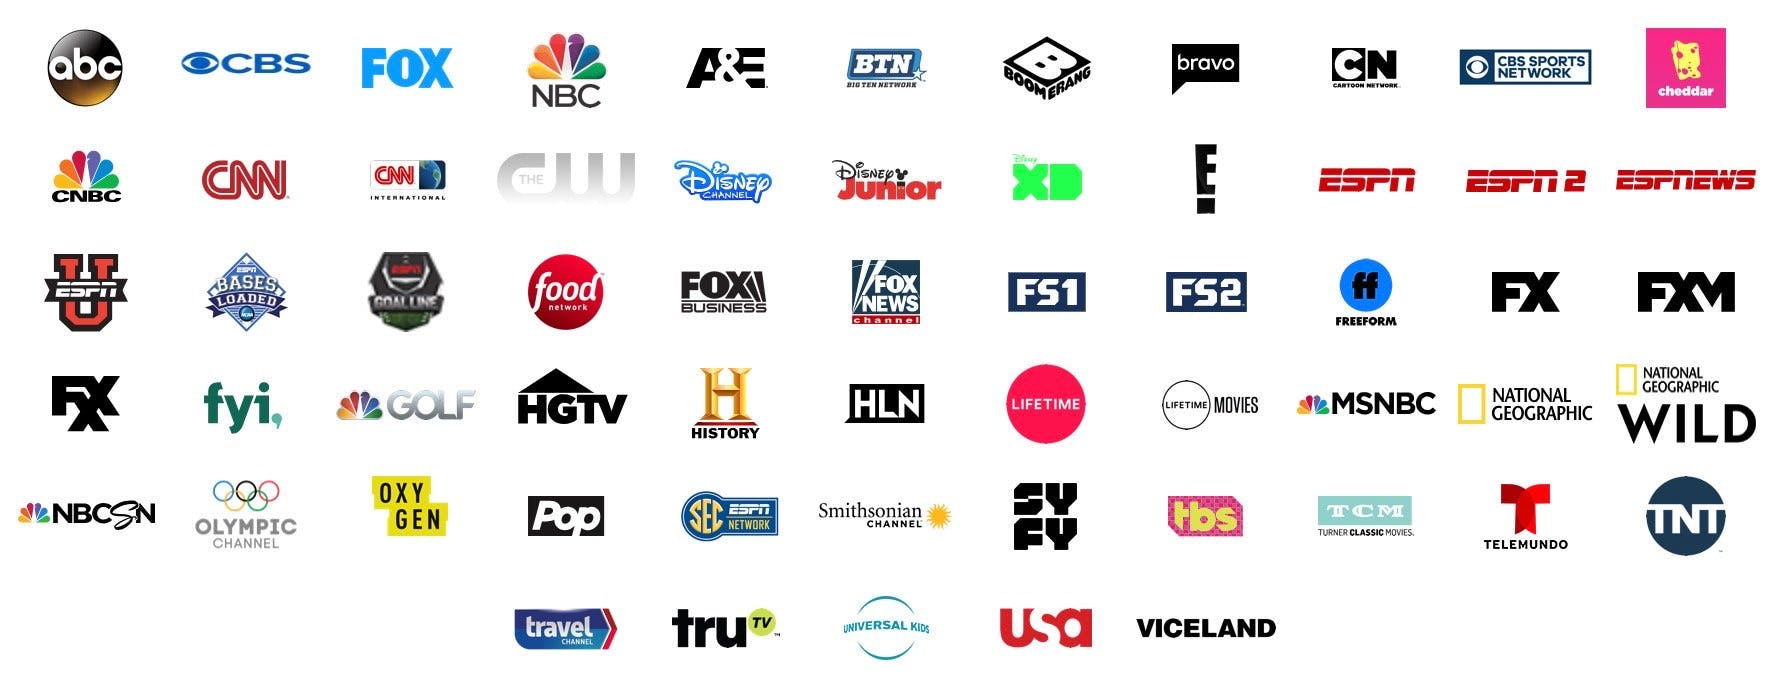 watch nba games live stream hulu live tv channels lakers clippers